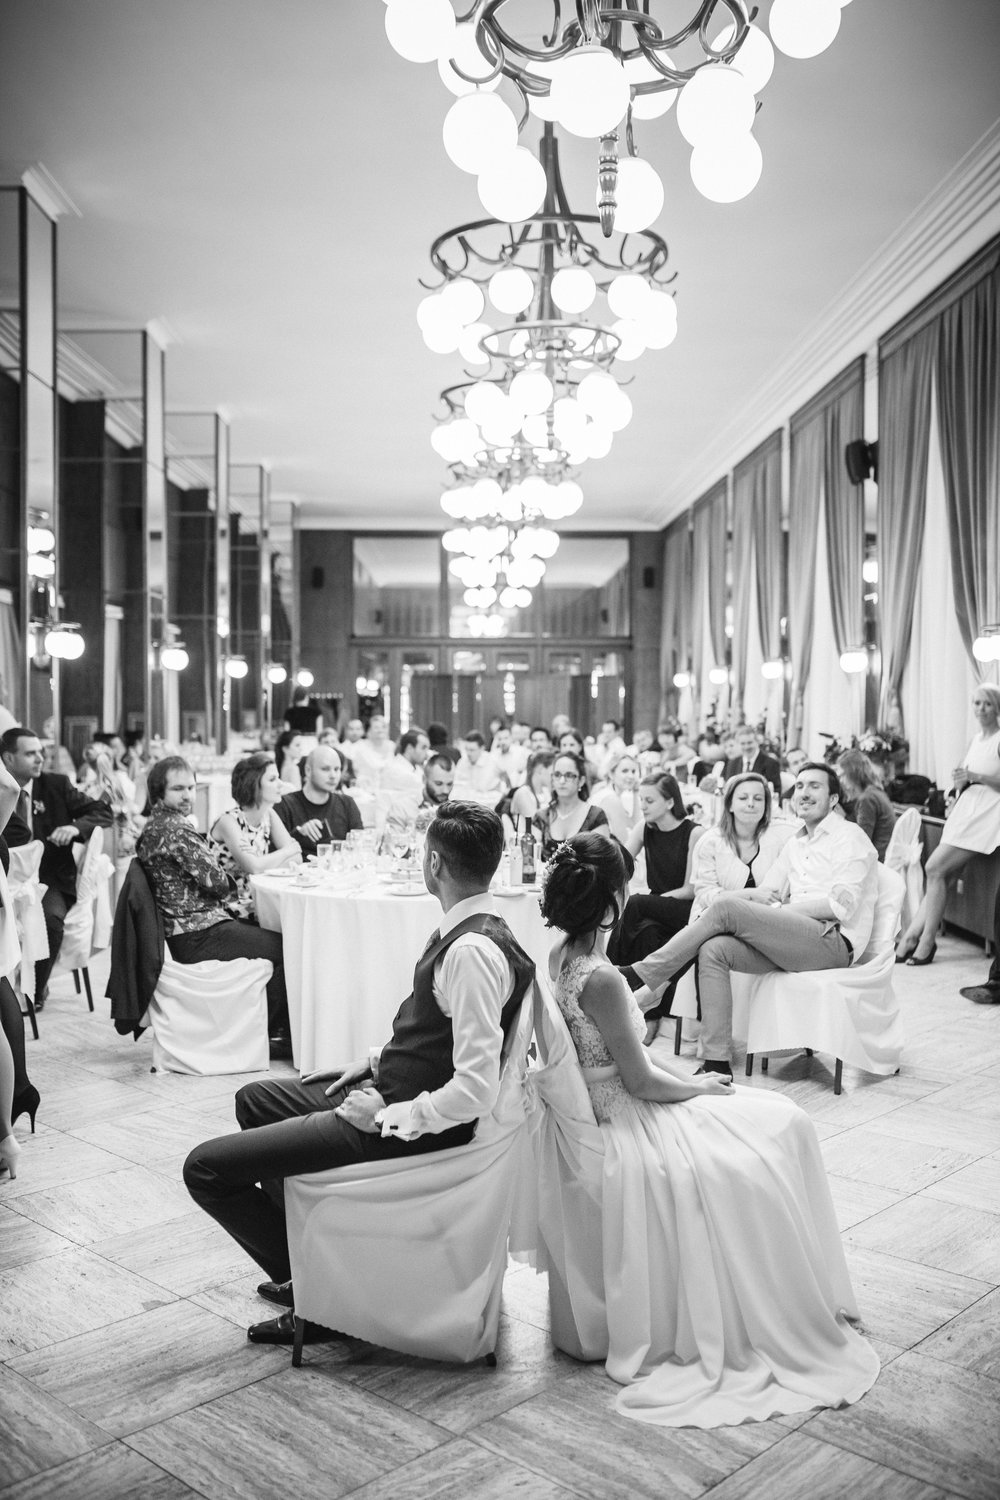 destination-wedding-photographer-slovakia-bratislava-bw-documentary-style-reception-game.jpg